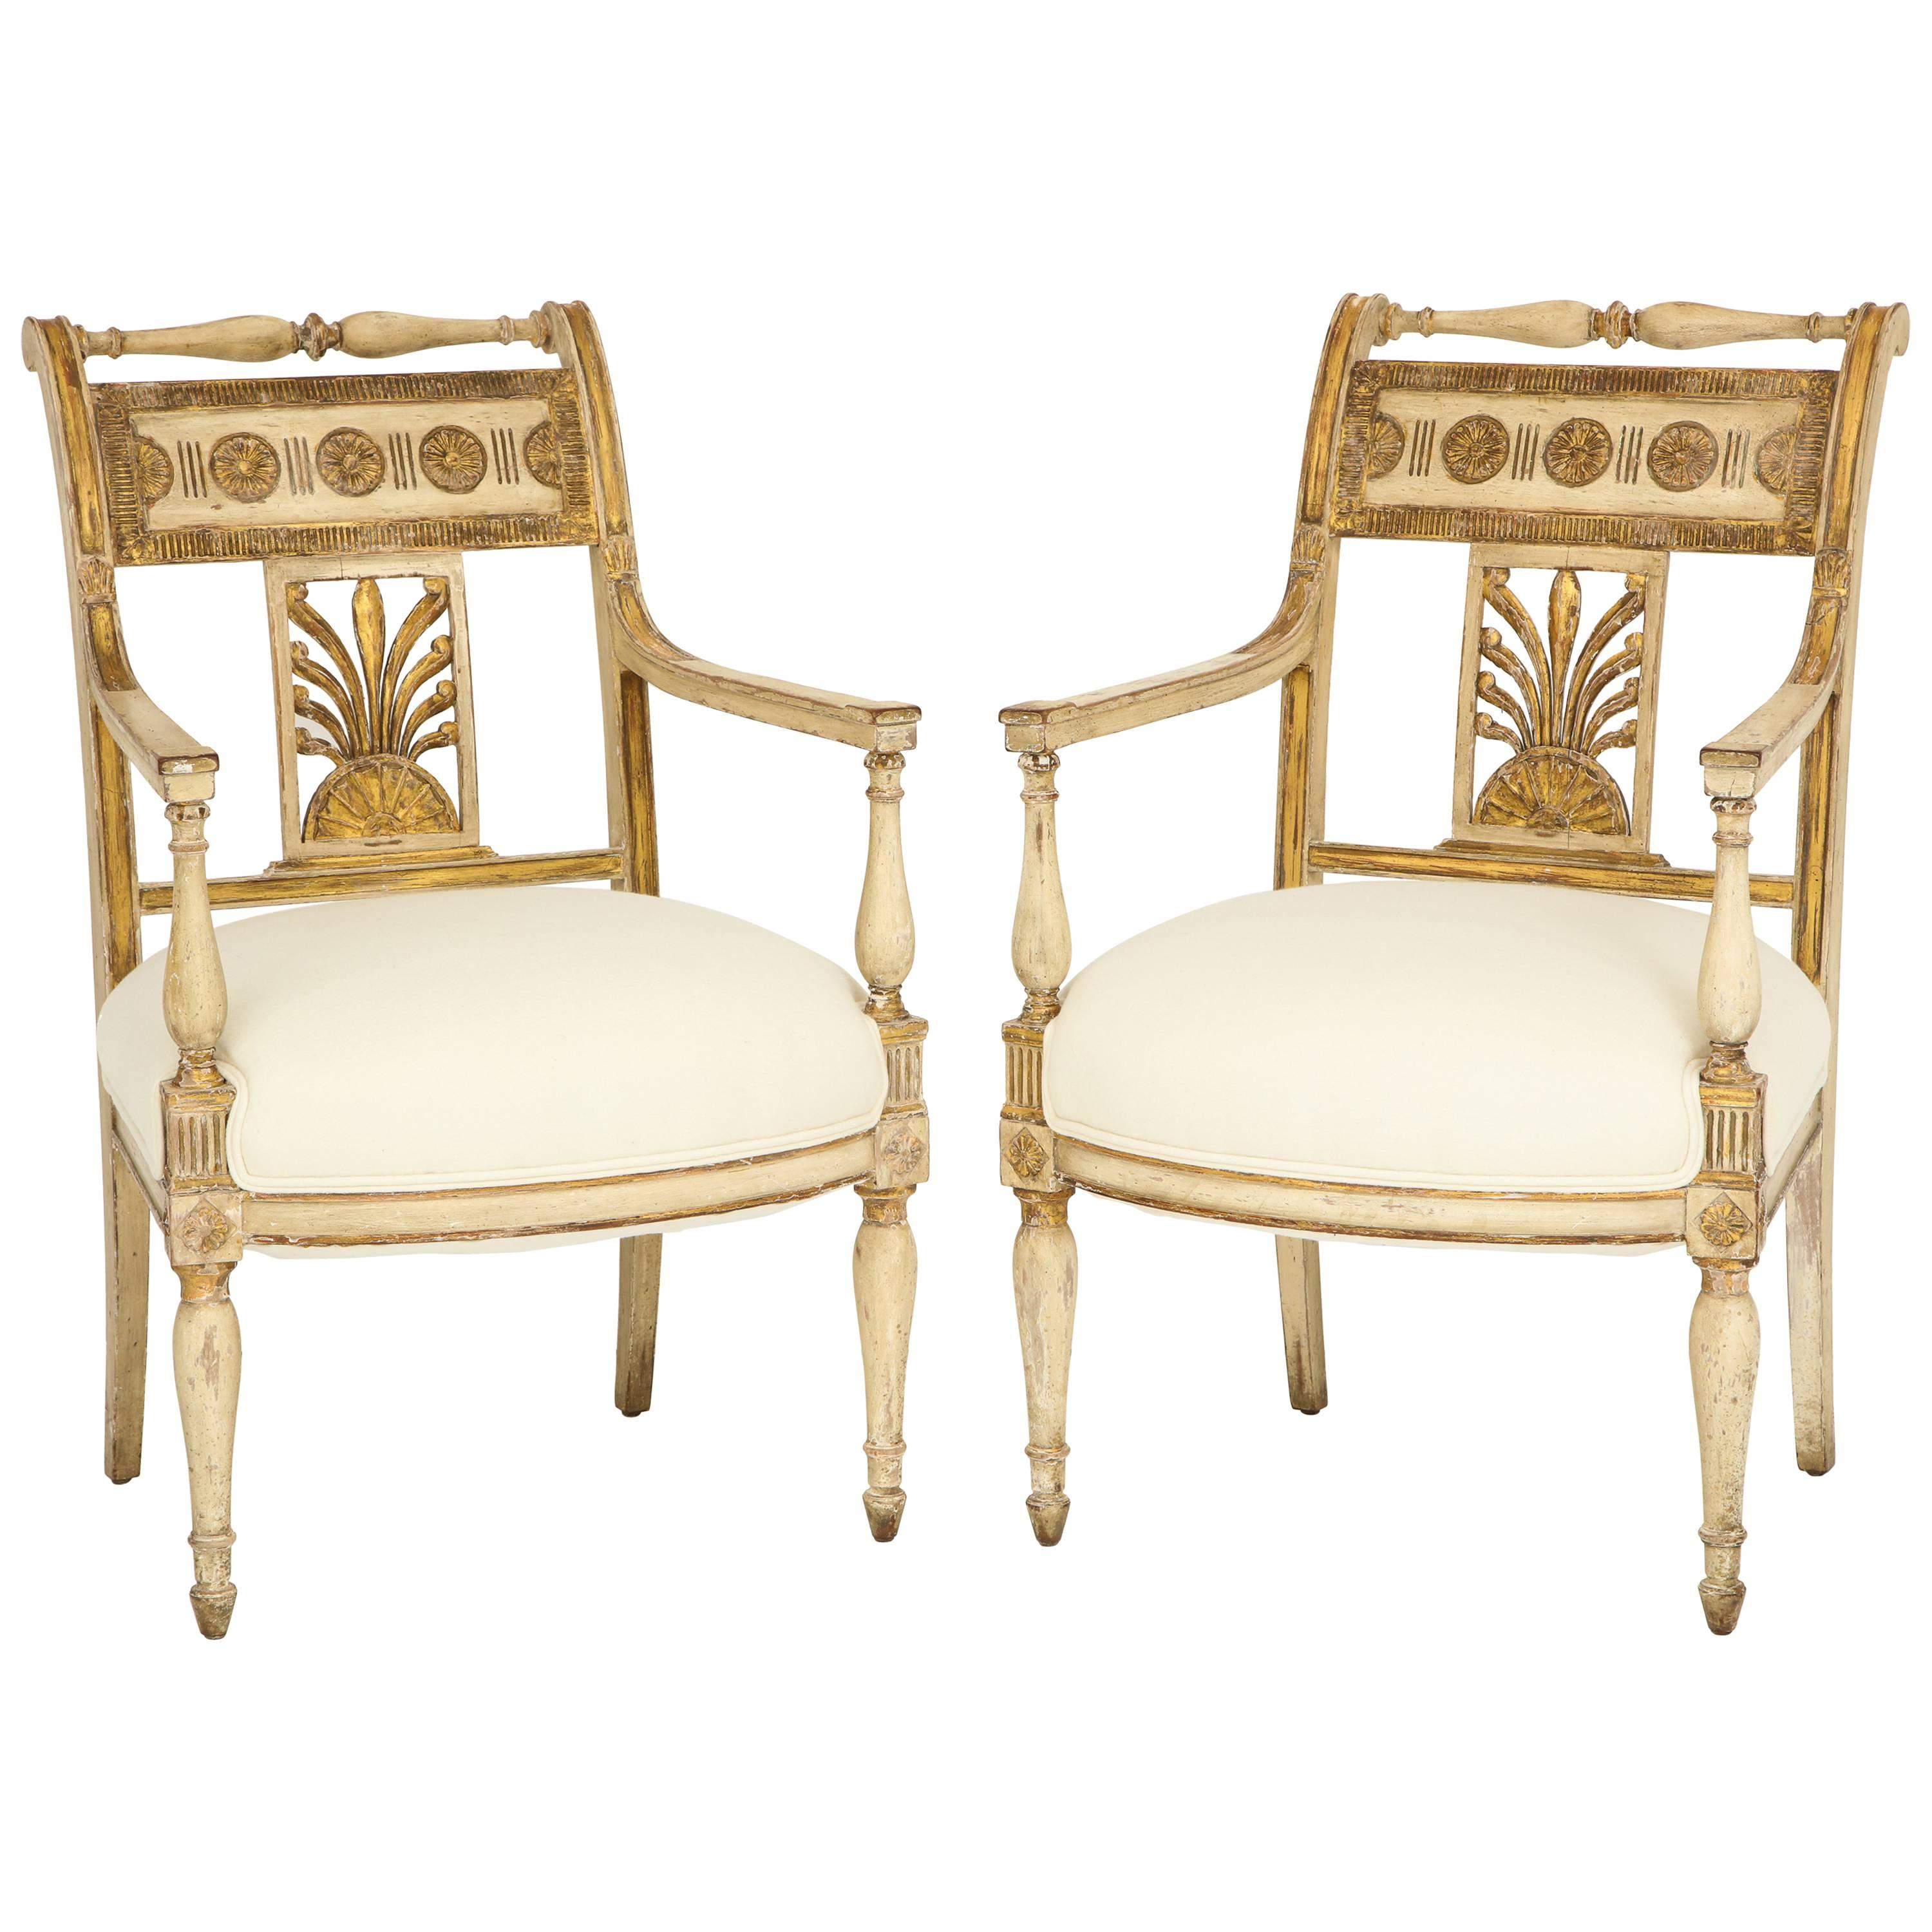 Pair of Italian Painted and Gilded Empire Period Armchairs